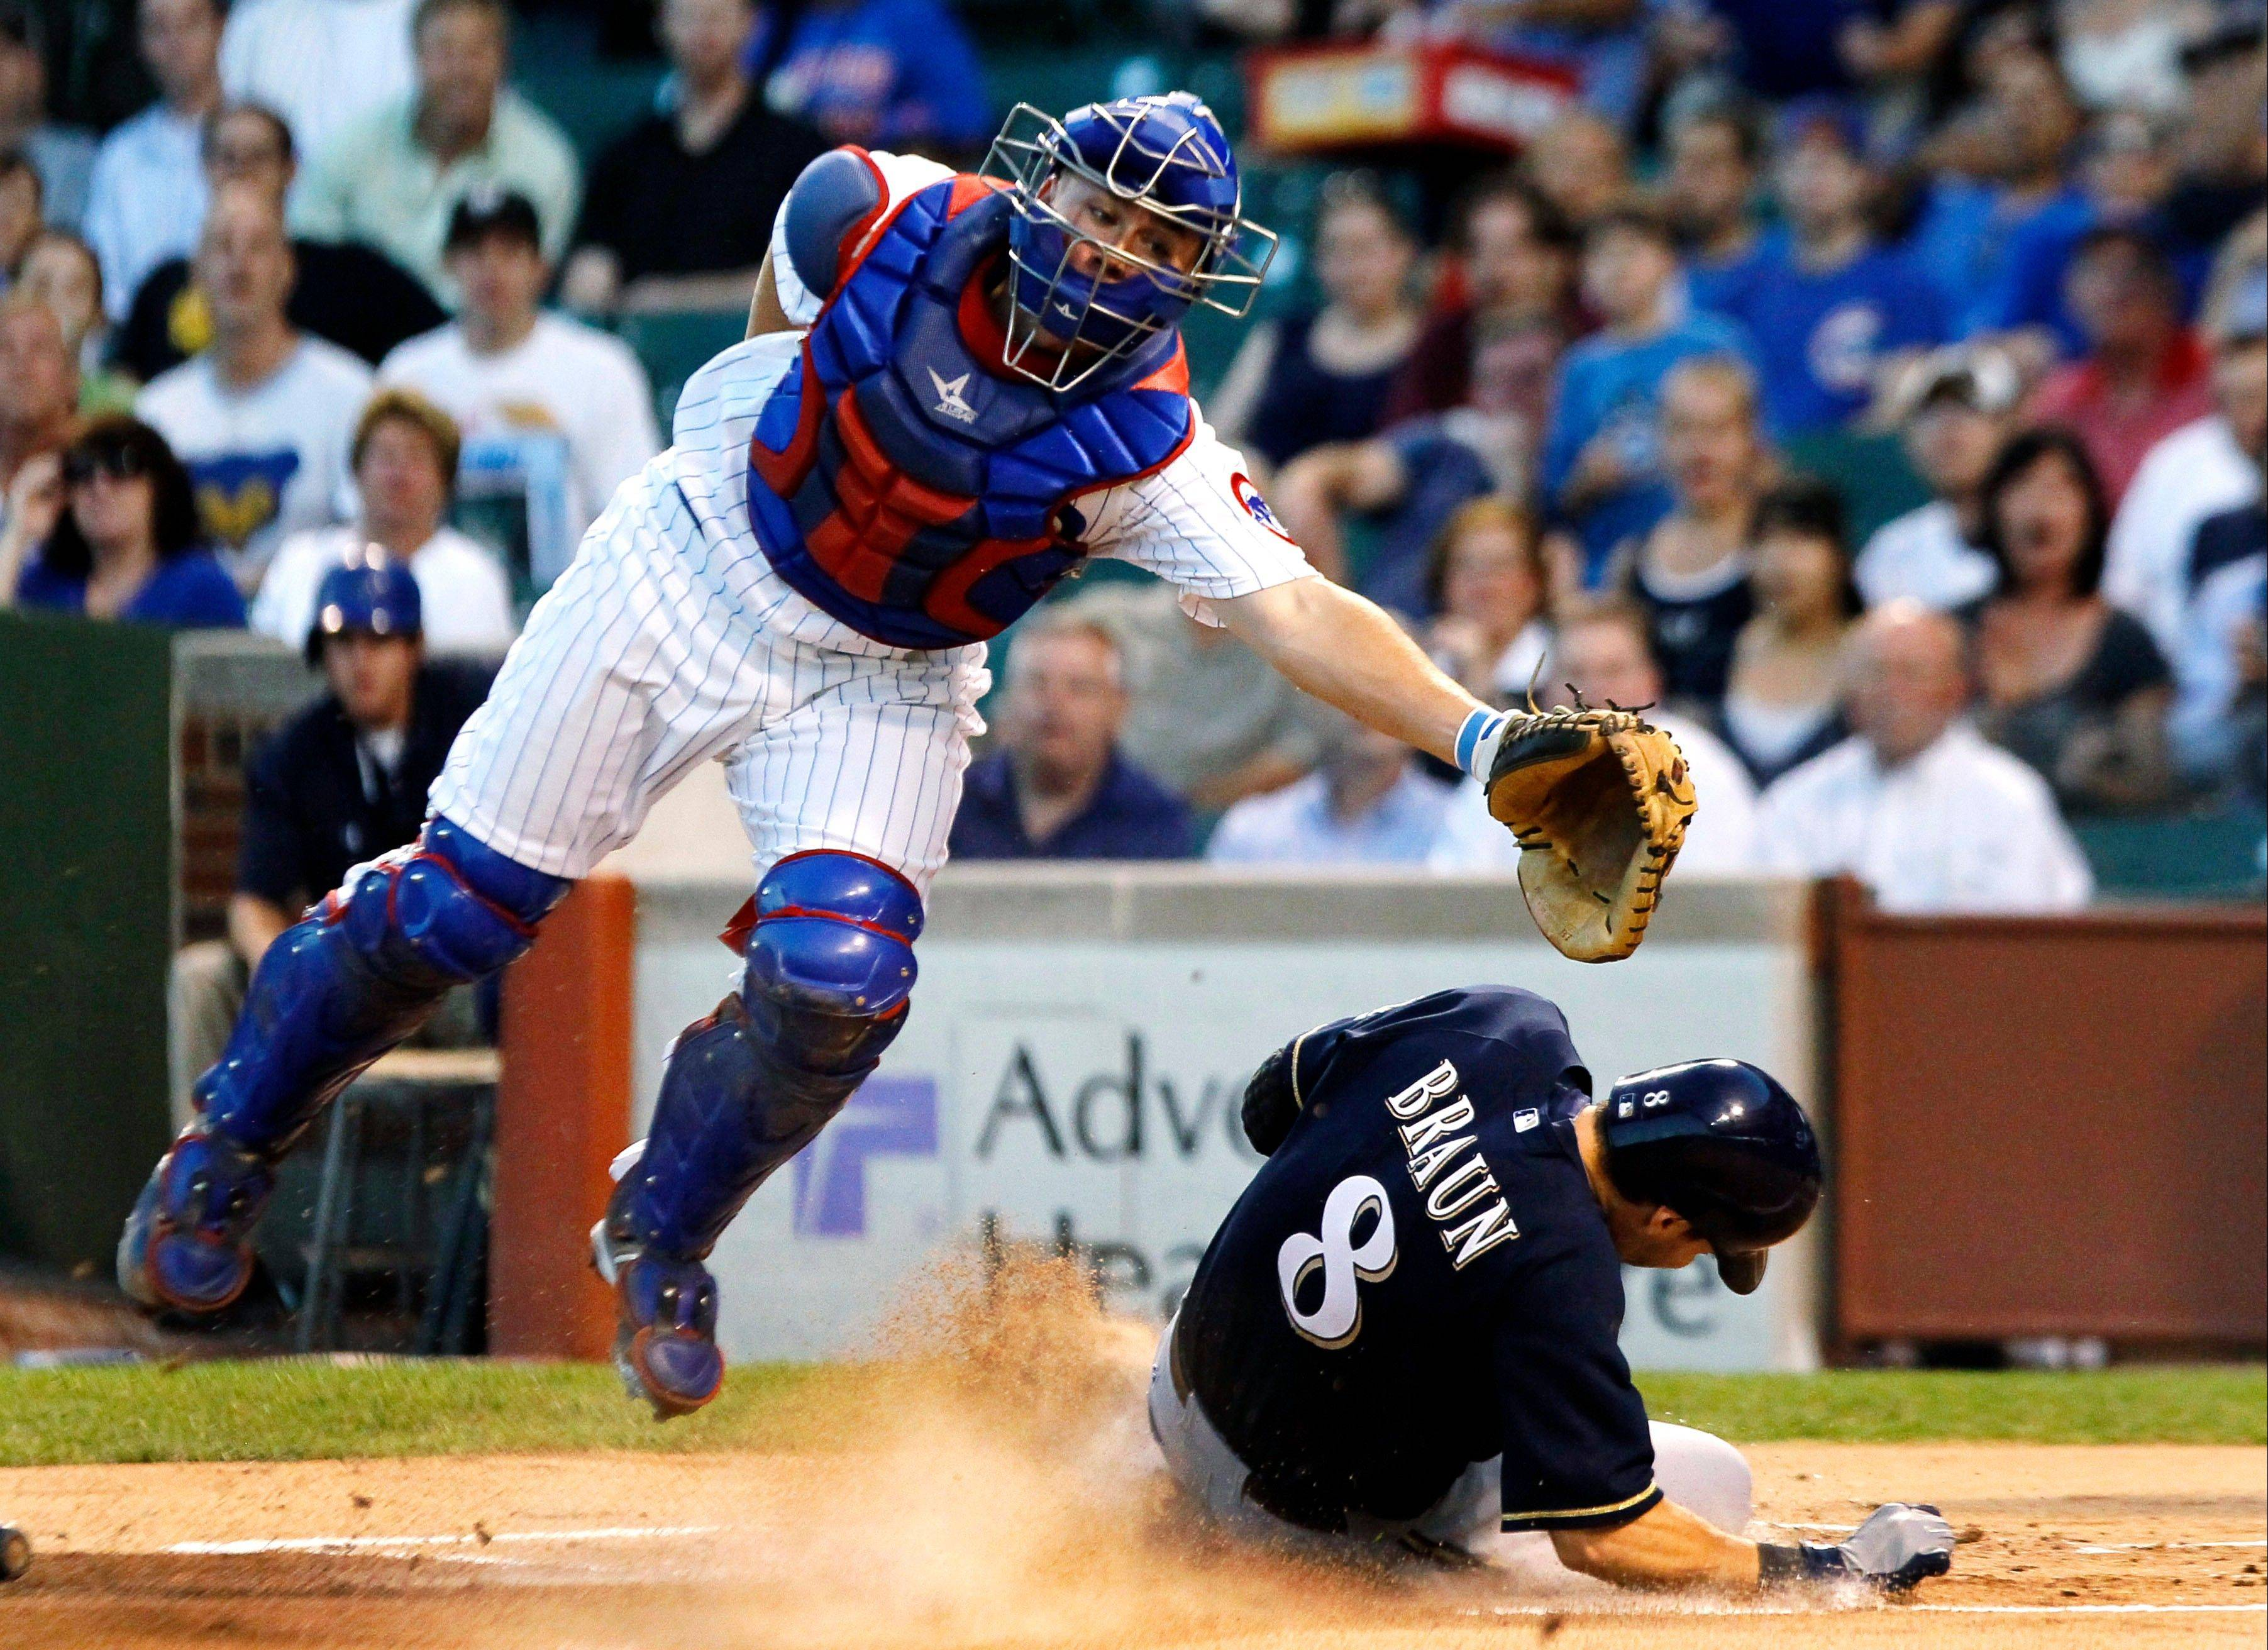 Ryan Braun scores on a double by Aramis Ramirez as Cubs catcher Steve Clevender stretches for a wide throw in the first inning Monday at Wrigley Field.